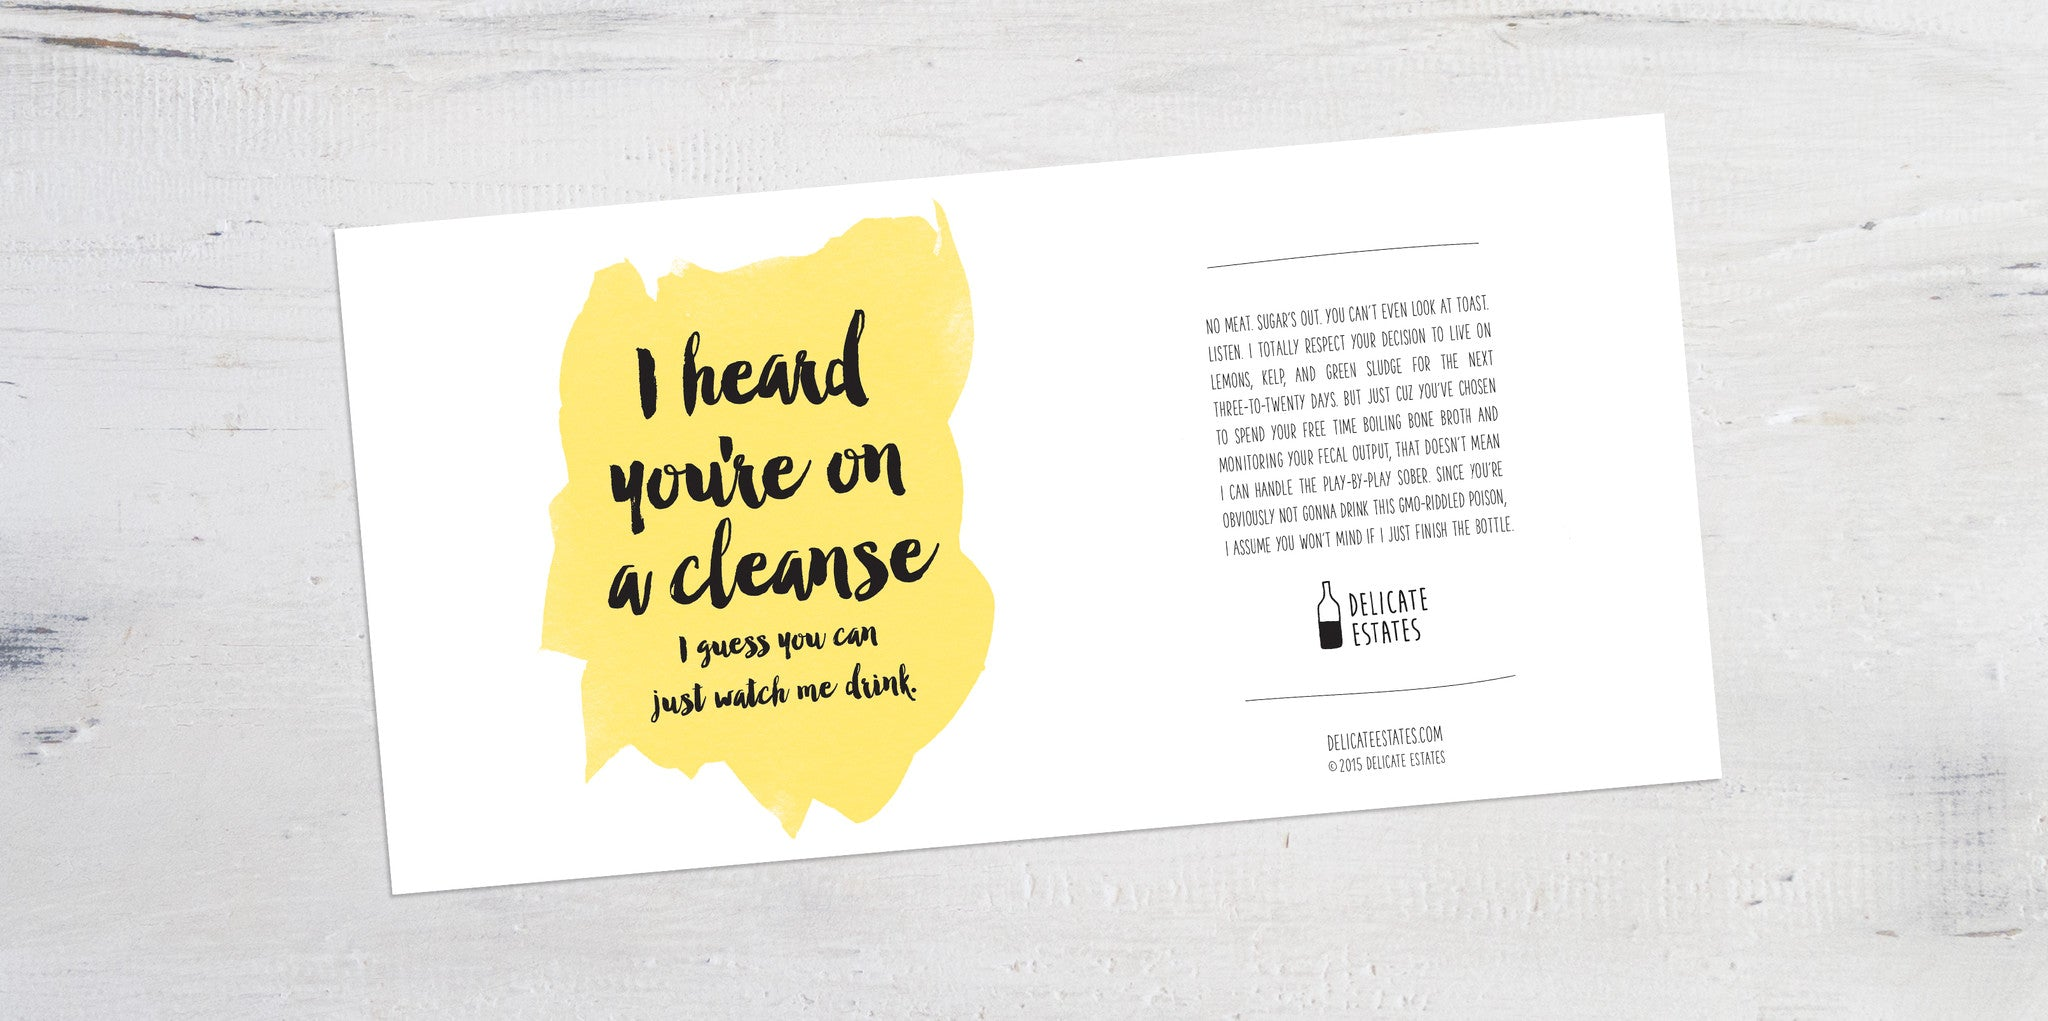 cleanse wine label greeting card delicate estates juicing toxins antioxidants nutrition hippies Los Angeles